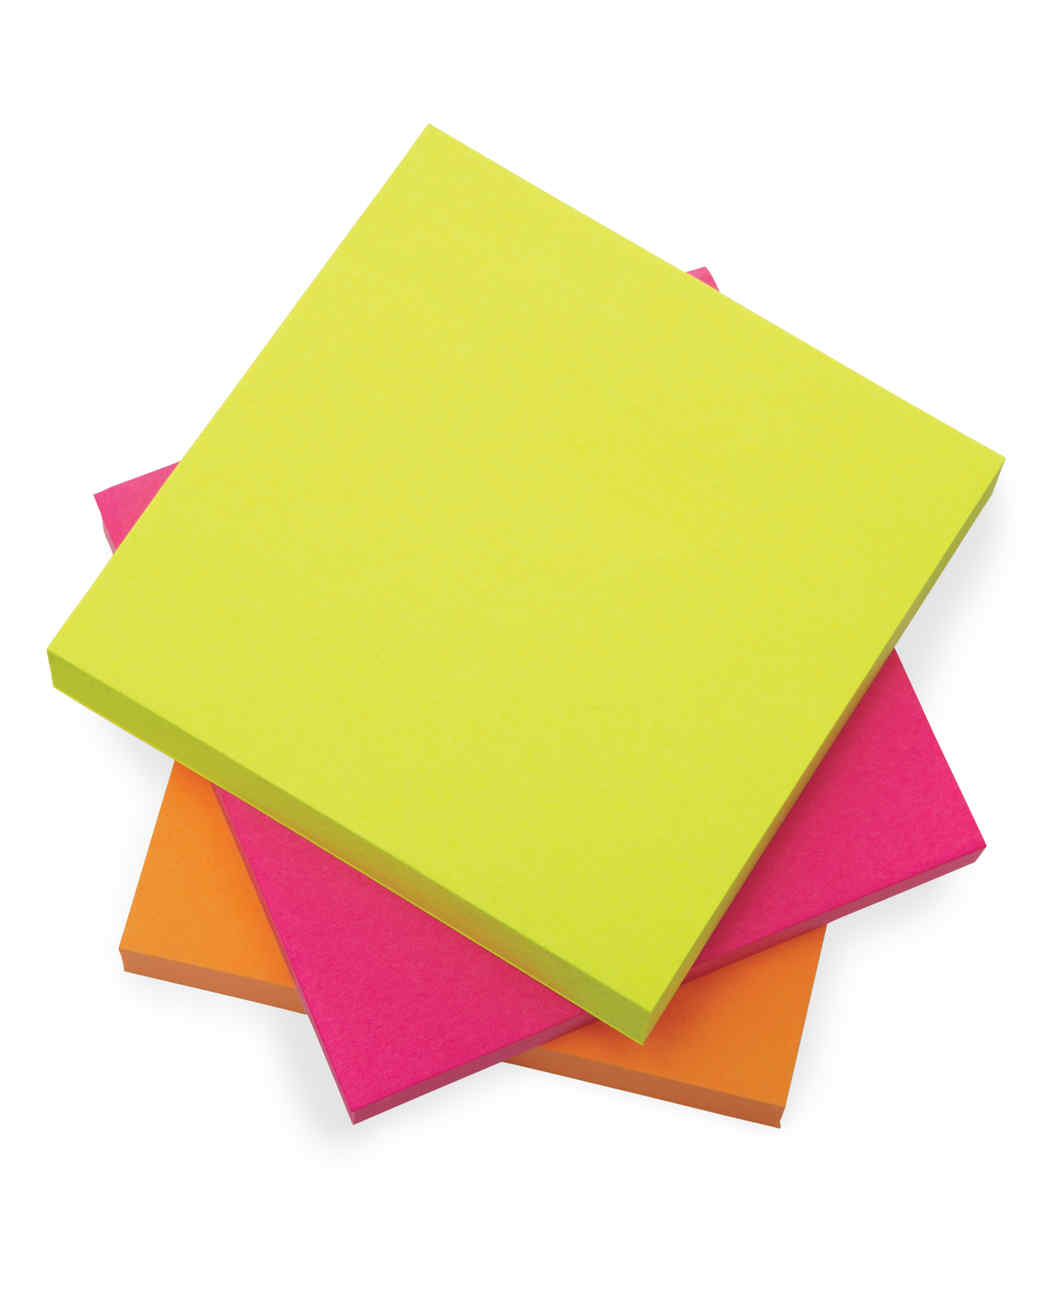 post-it-notes-md108414l.jpg